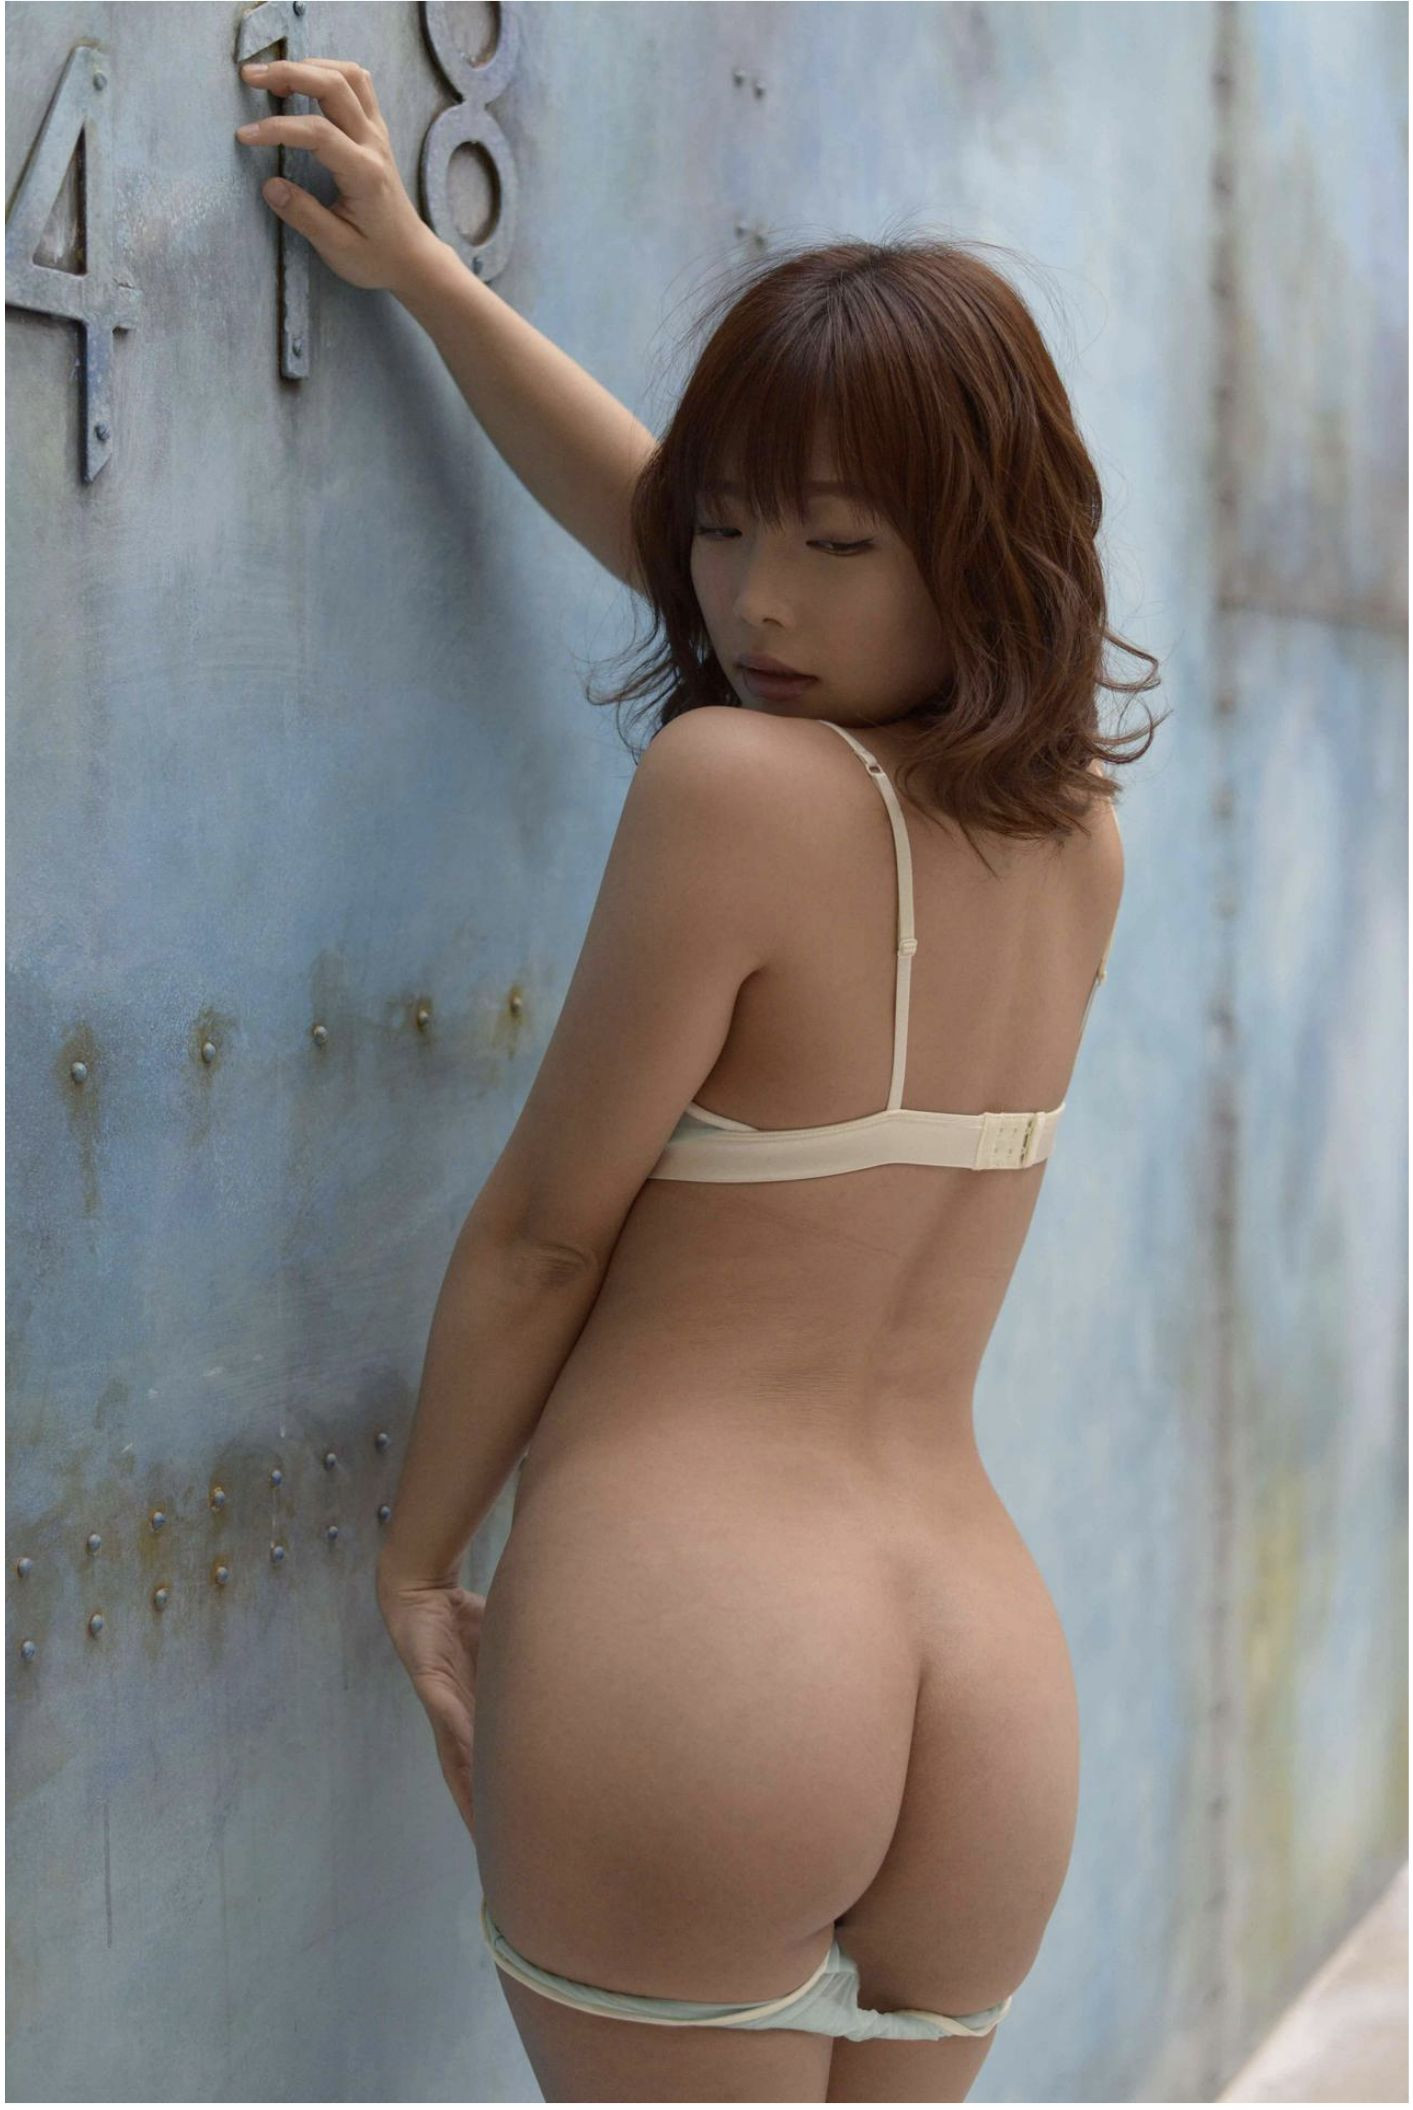 SOFT ON DEMAND GRAVURE COLLECTION 紗倉まな04 photo 089